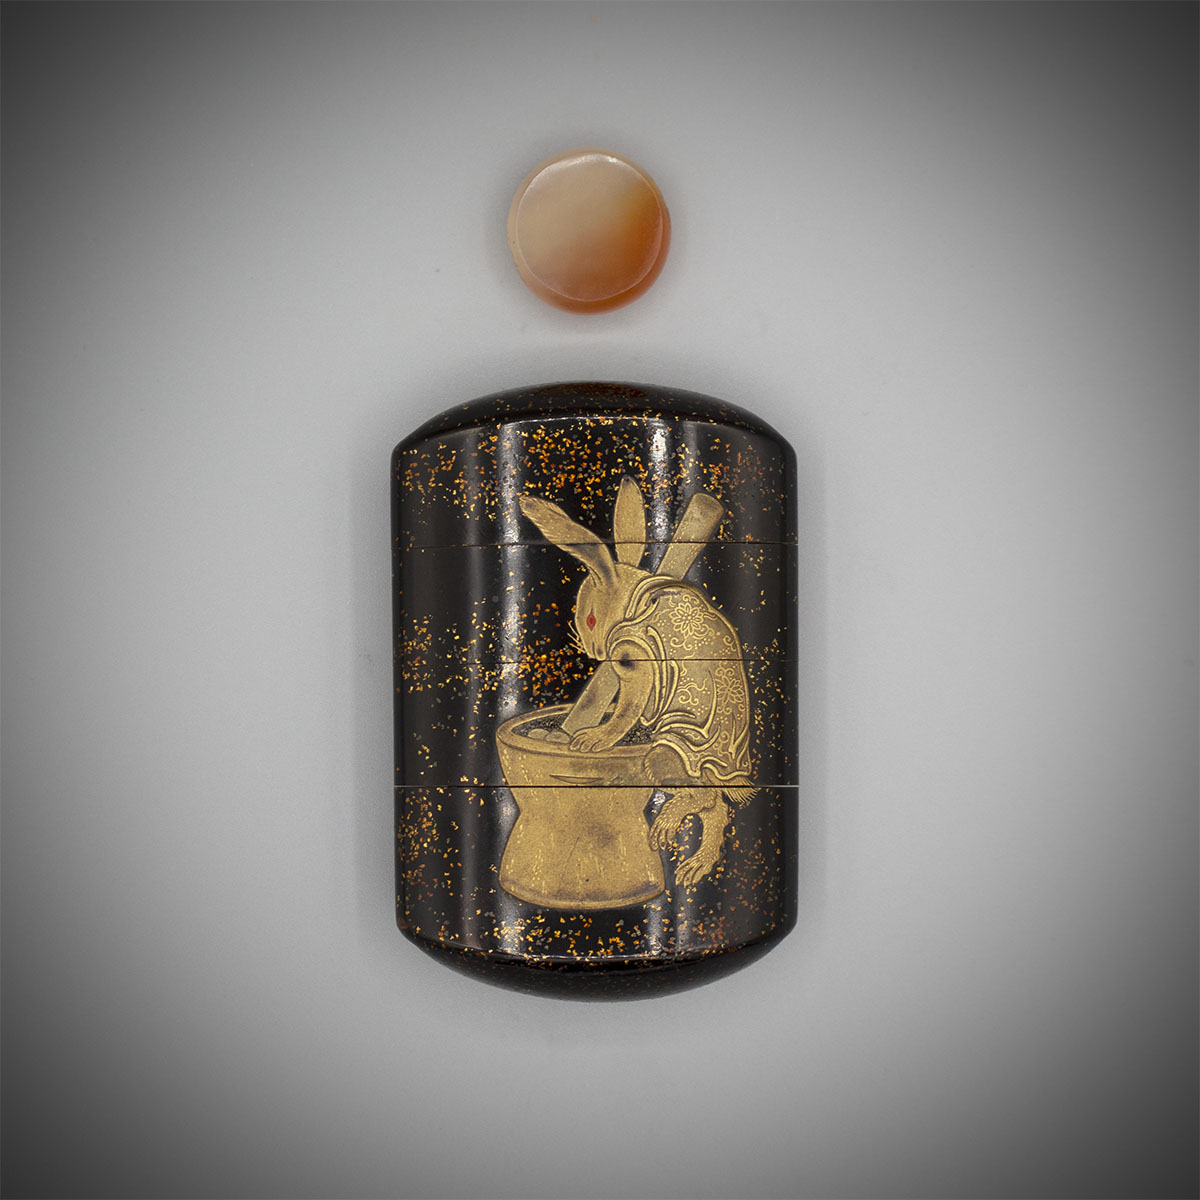 Inro with Lunar Hare MR3465_v.1